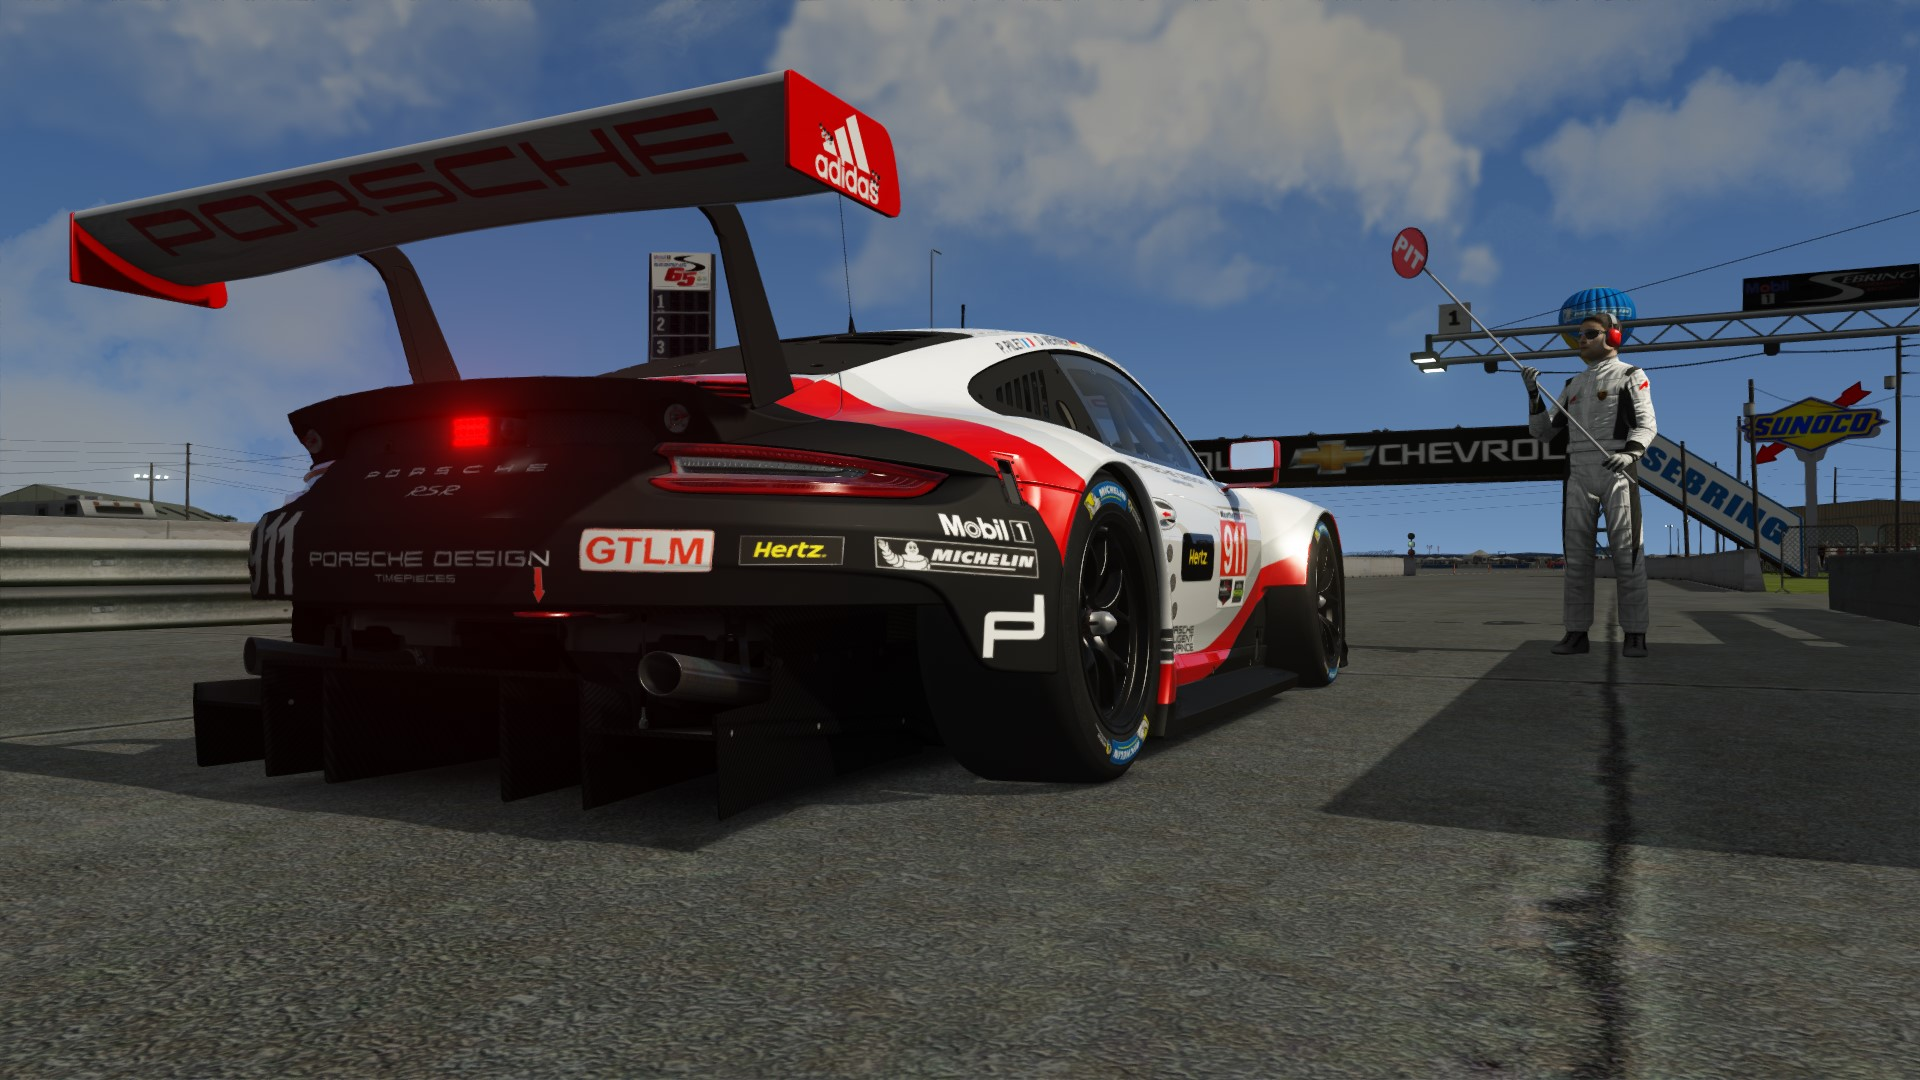 Screenshot_ks_porsche_911_rsr_2017_sebring_26-3-117-21-9-39.jpg